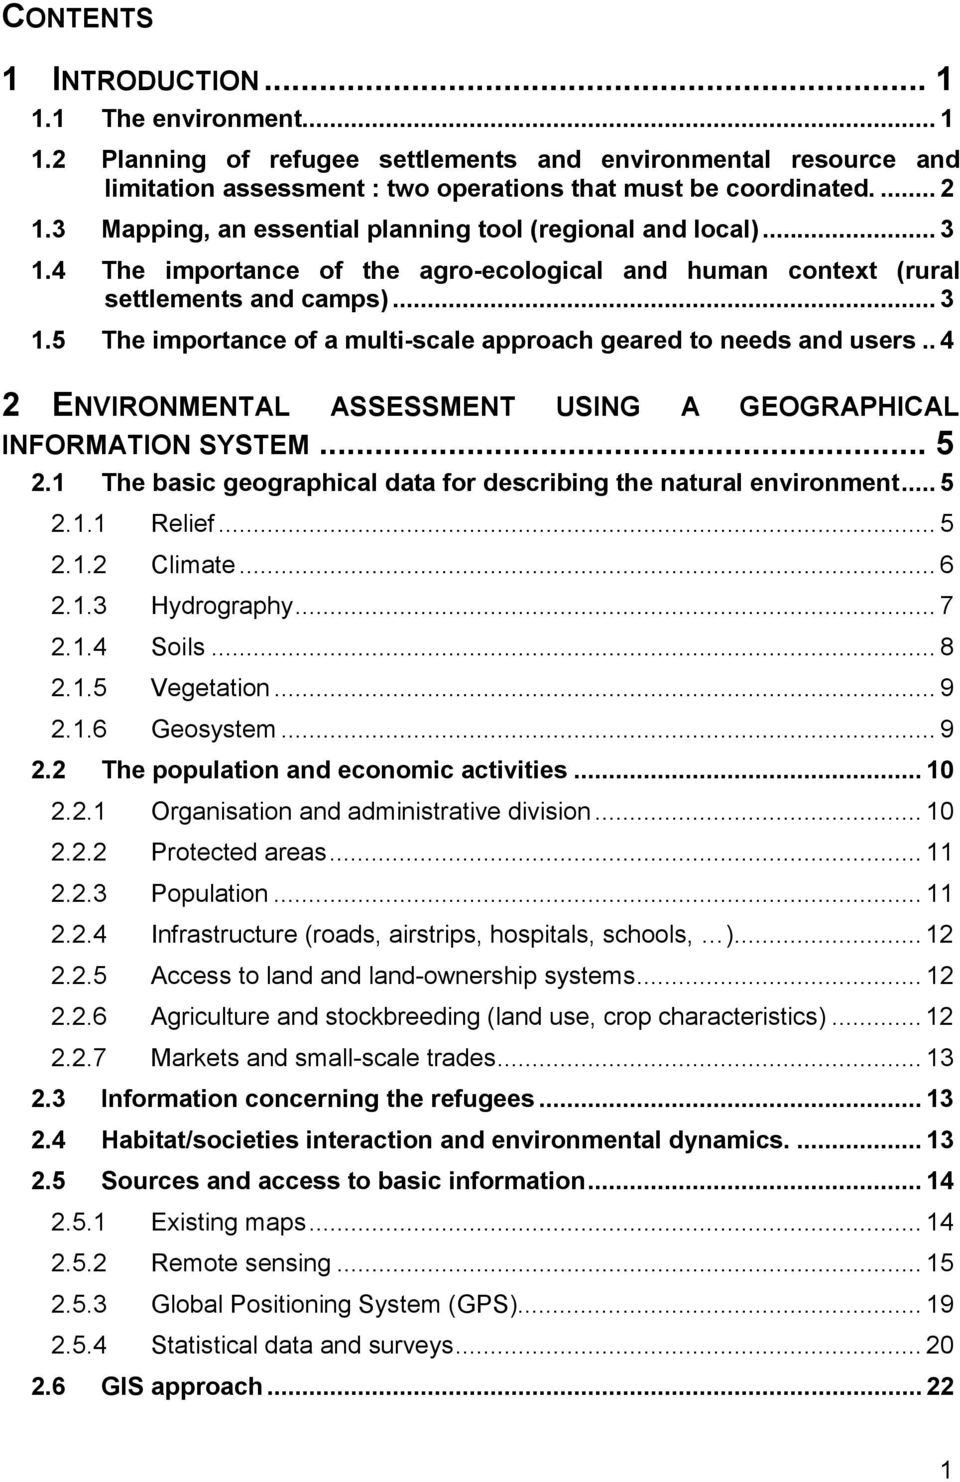 . 4 2 ENVIRONMENTAL ASSESSMENT USING A GEOGRAPHICAL INFORMATION SYSTEM... 5 2.1 The basic geographical data for describing the natural environment... 5 2.1.1 Relief... 5 2.1.2 Climate... 6 2.1.3 Hydrography.